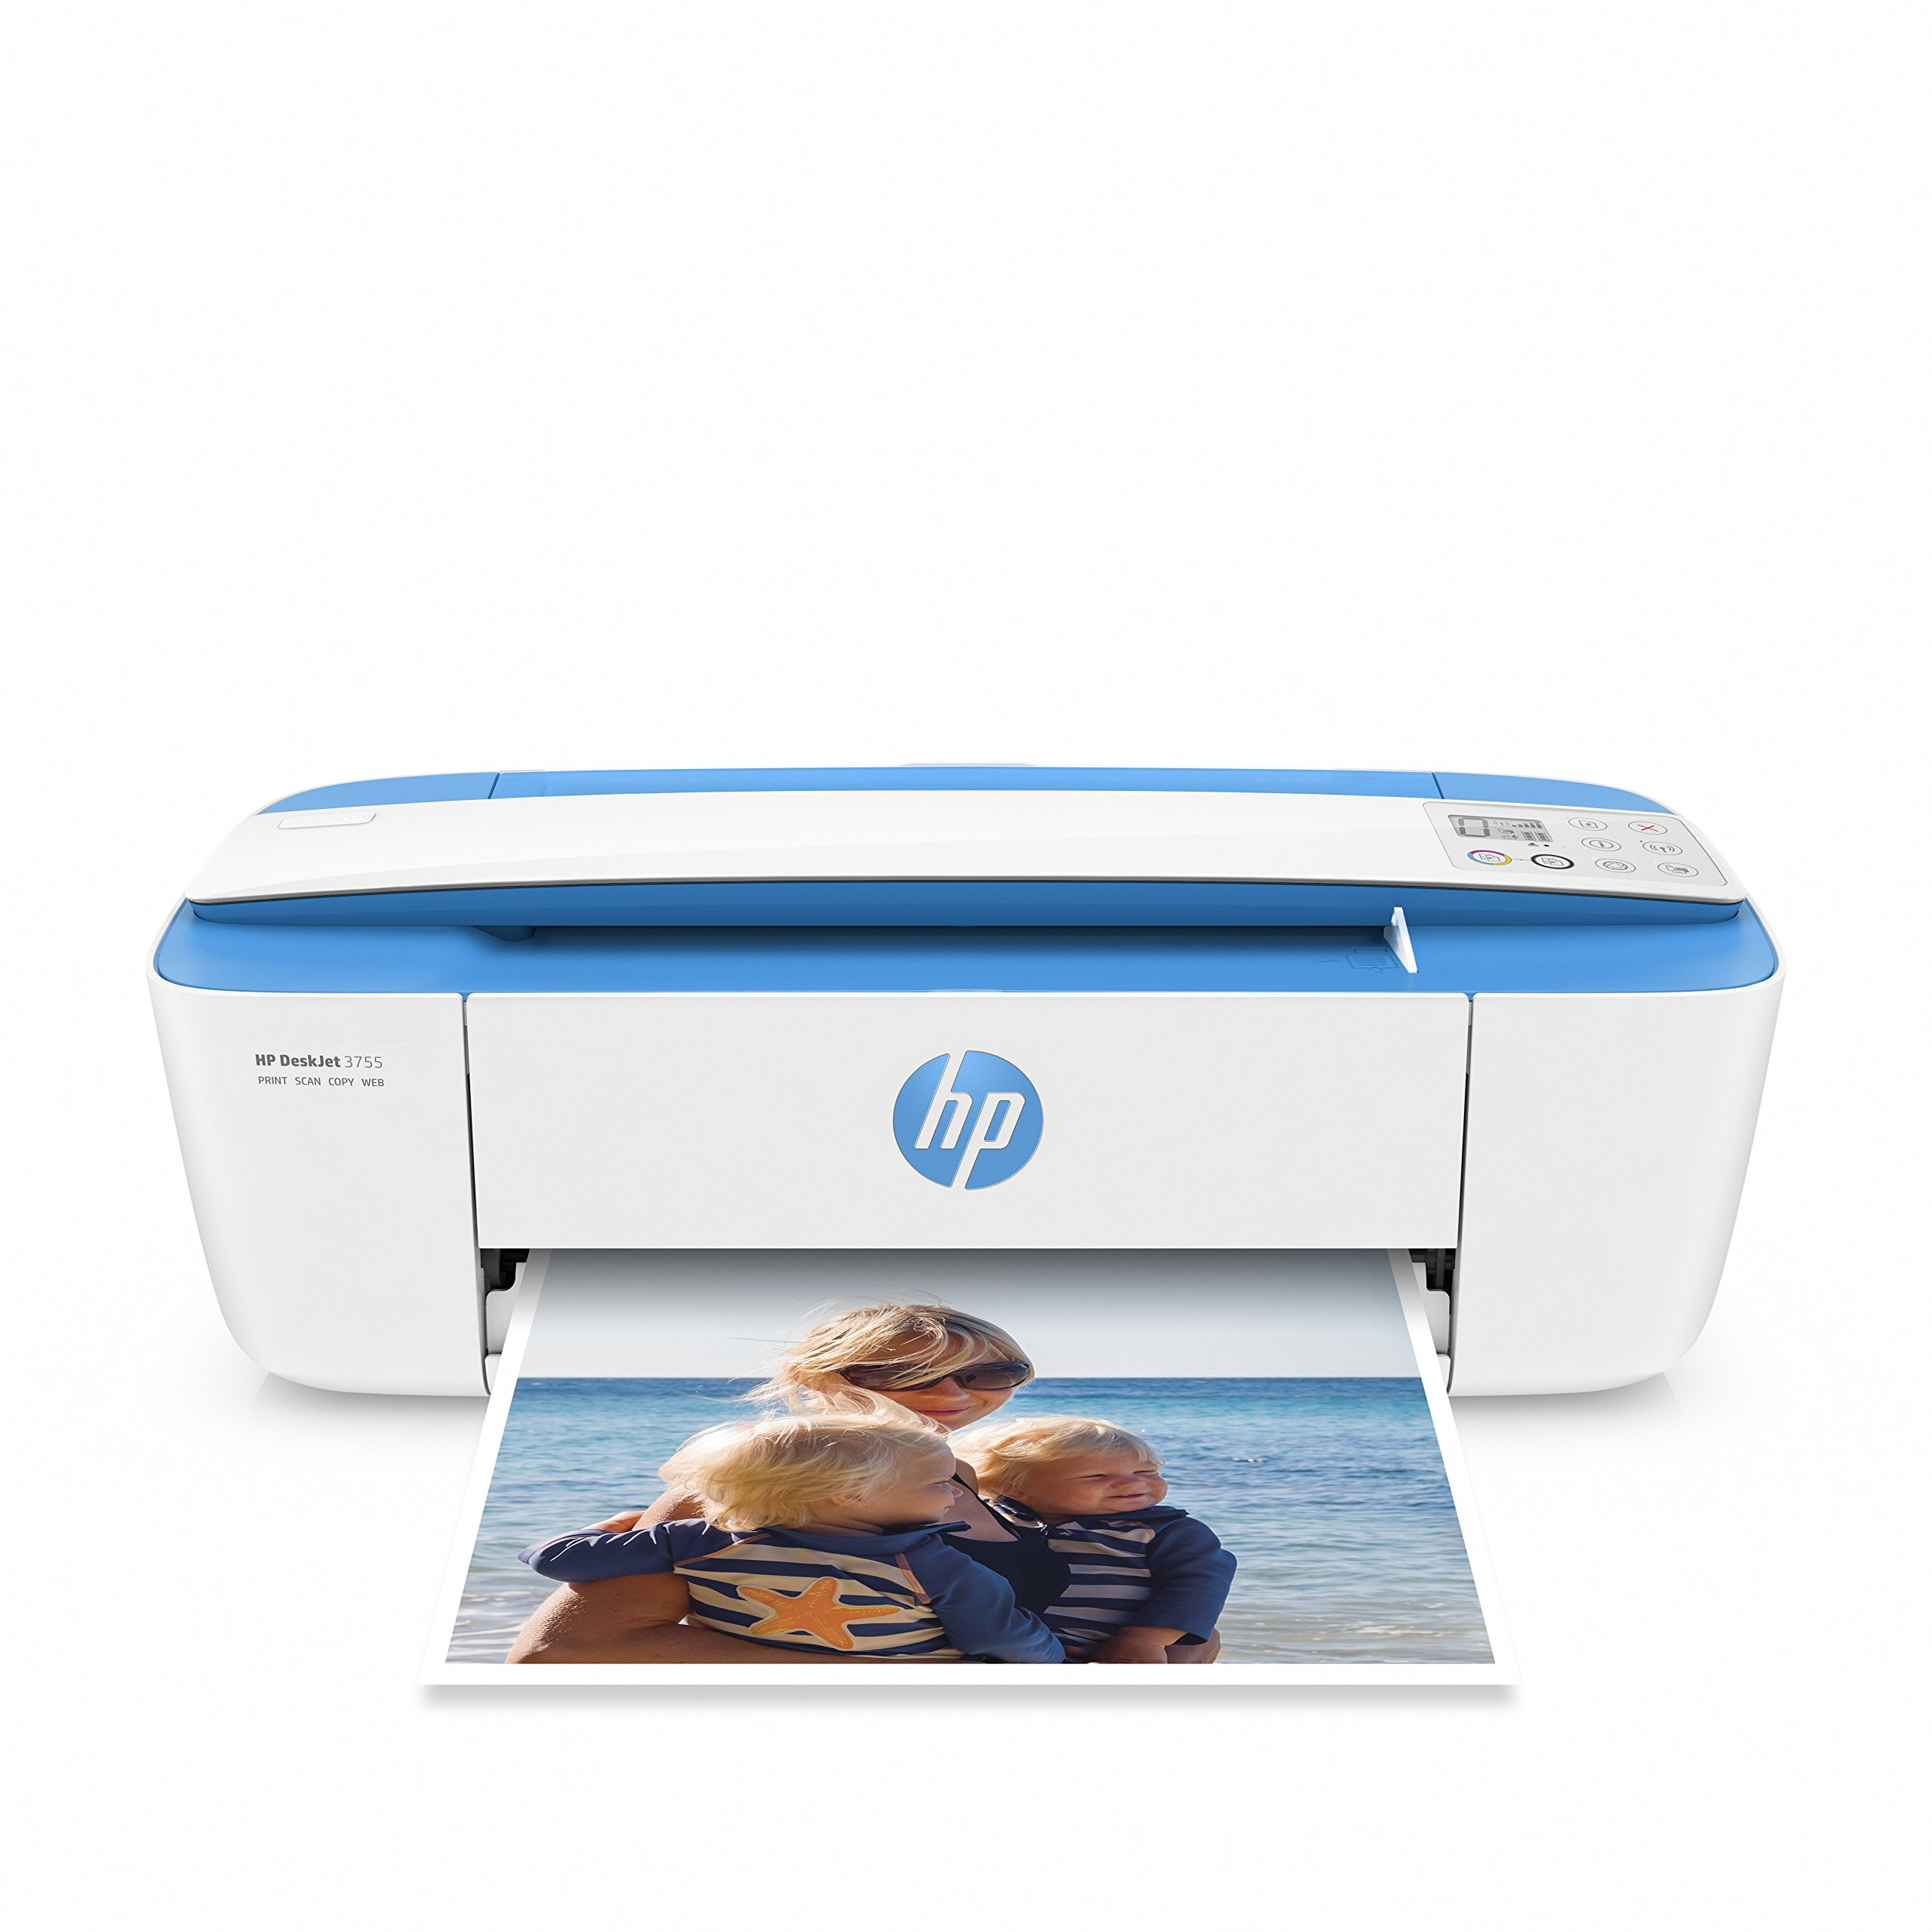 HP DeskJet 3755 Compact All-in-One Wireless Printer with Mobile Printing, HP Instant Ink & Amazon Dash Replenishment ready - Blue Accent (J9V90A)